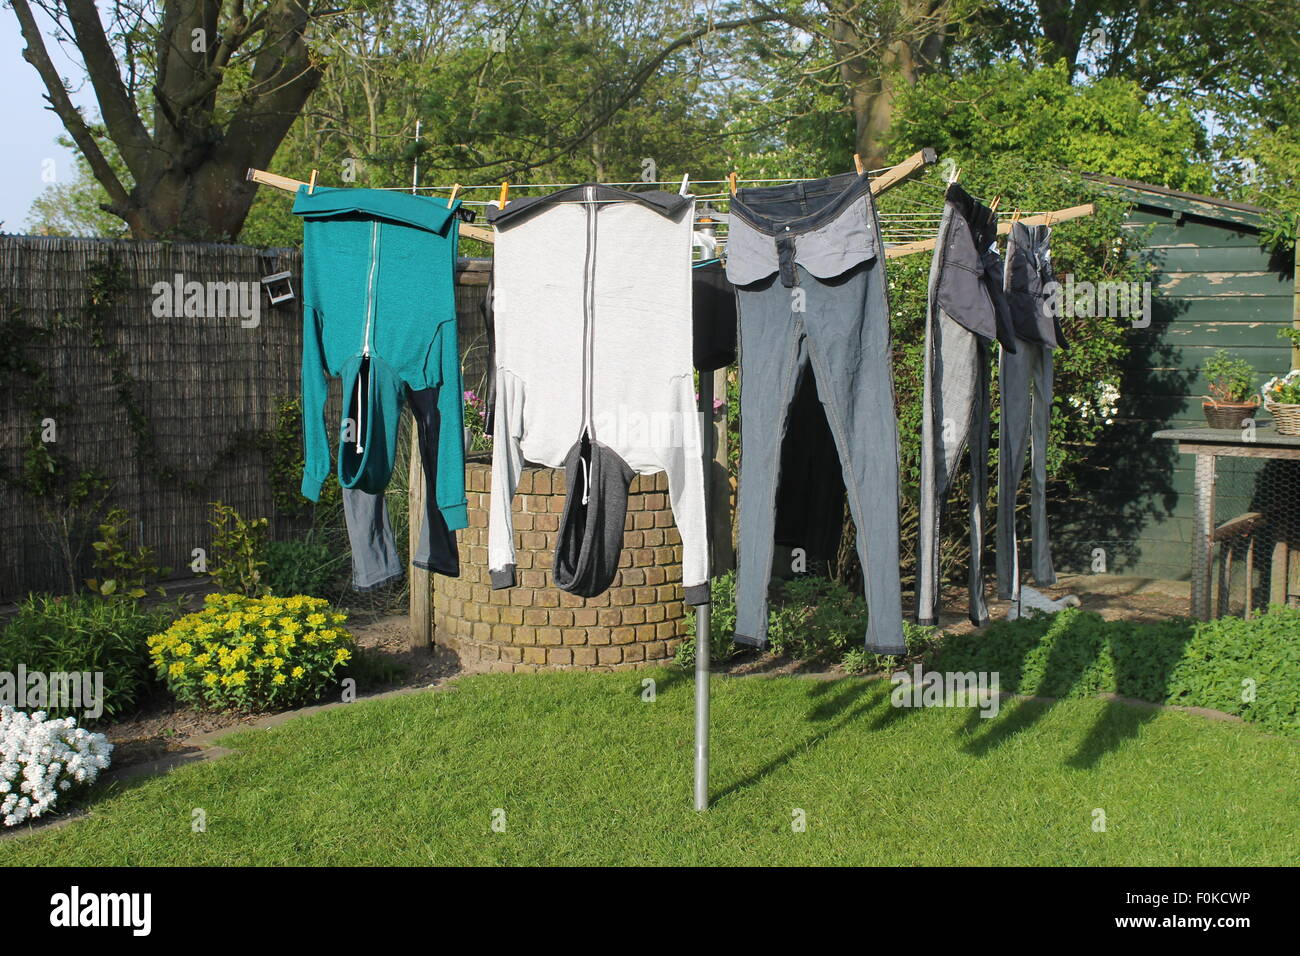 Jeans Washing Line Stock Photos & Jeans Washing Line Stock Images ...